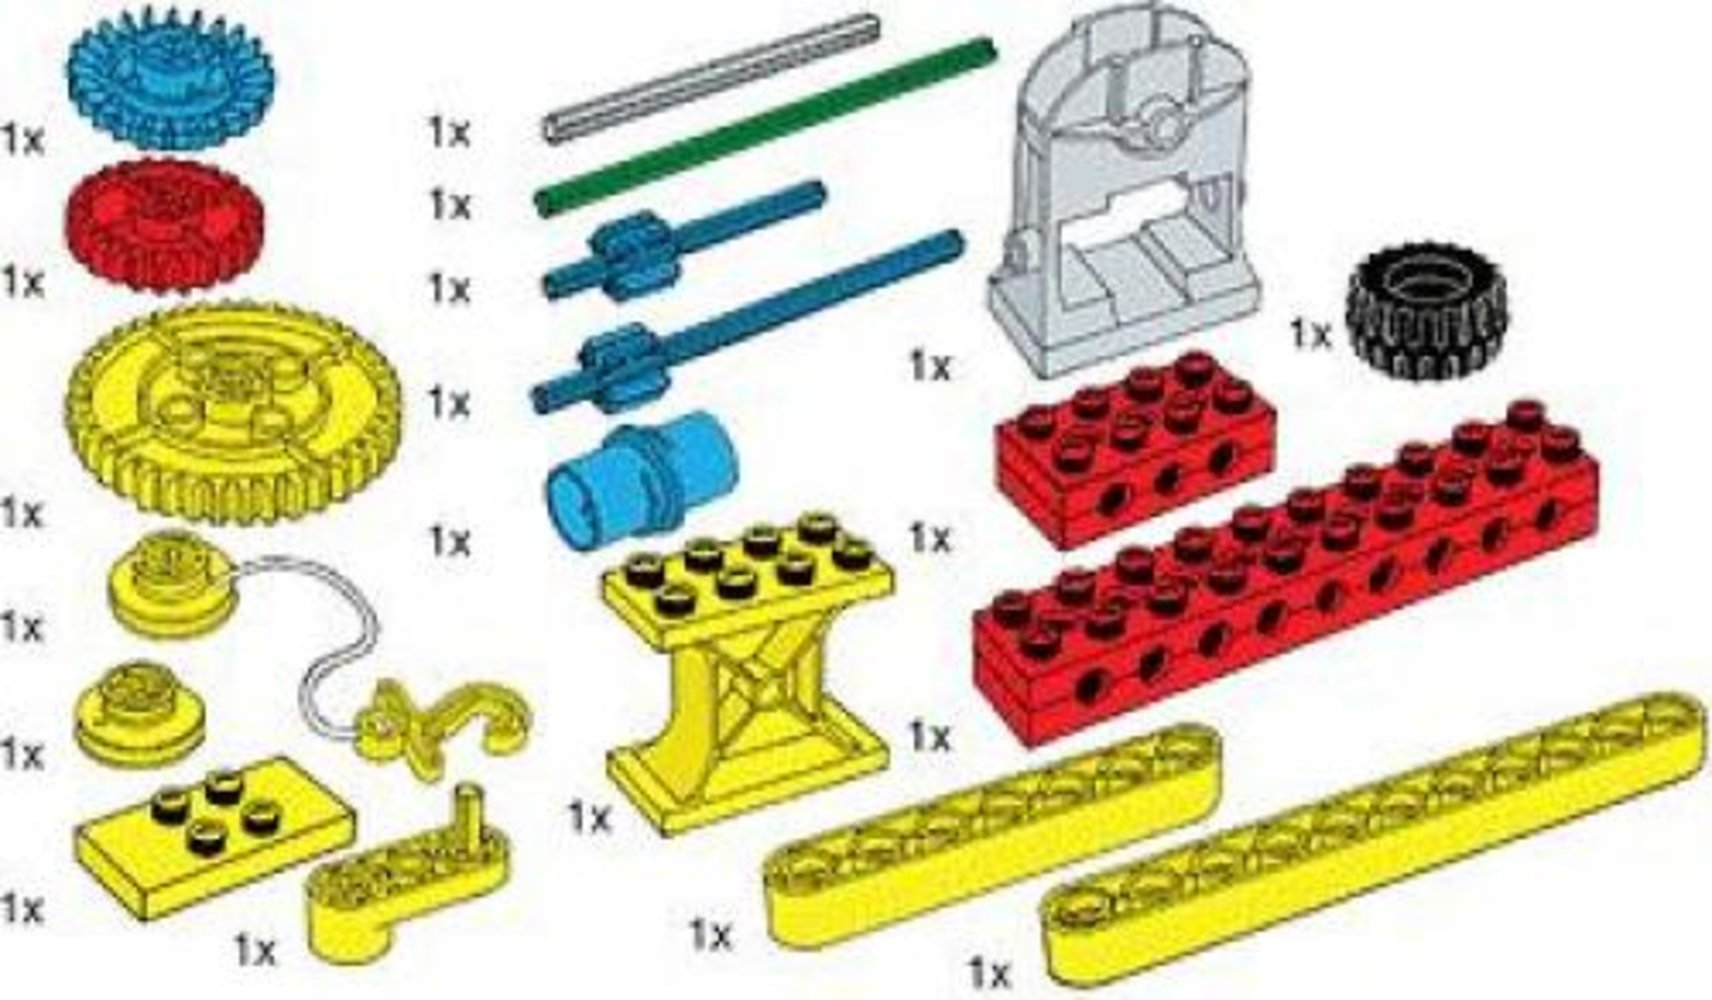 Special Elements for Early Simple Machines Set